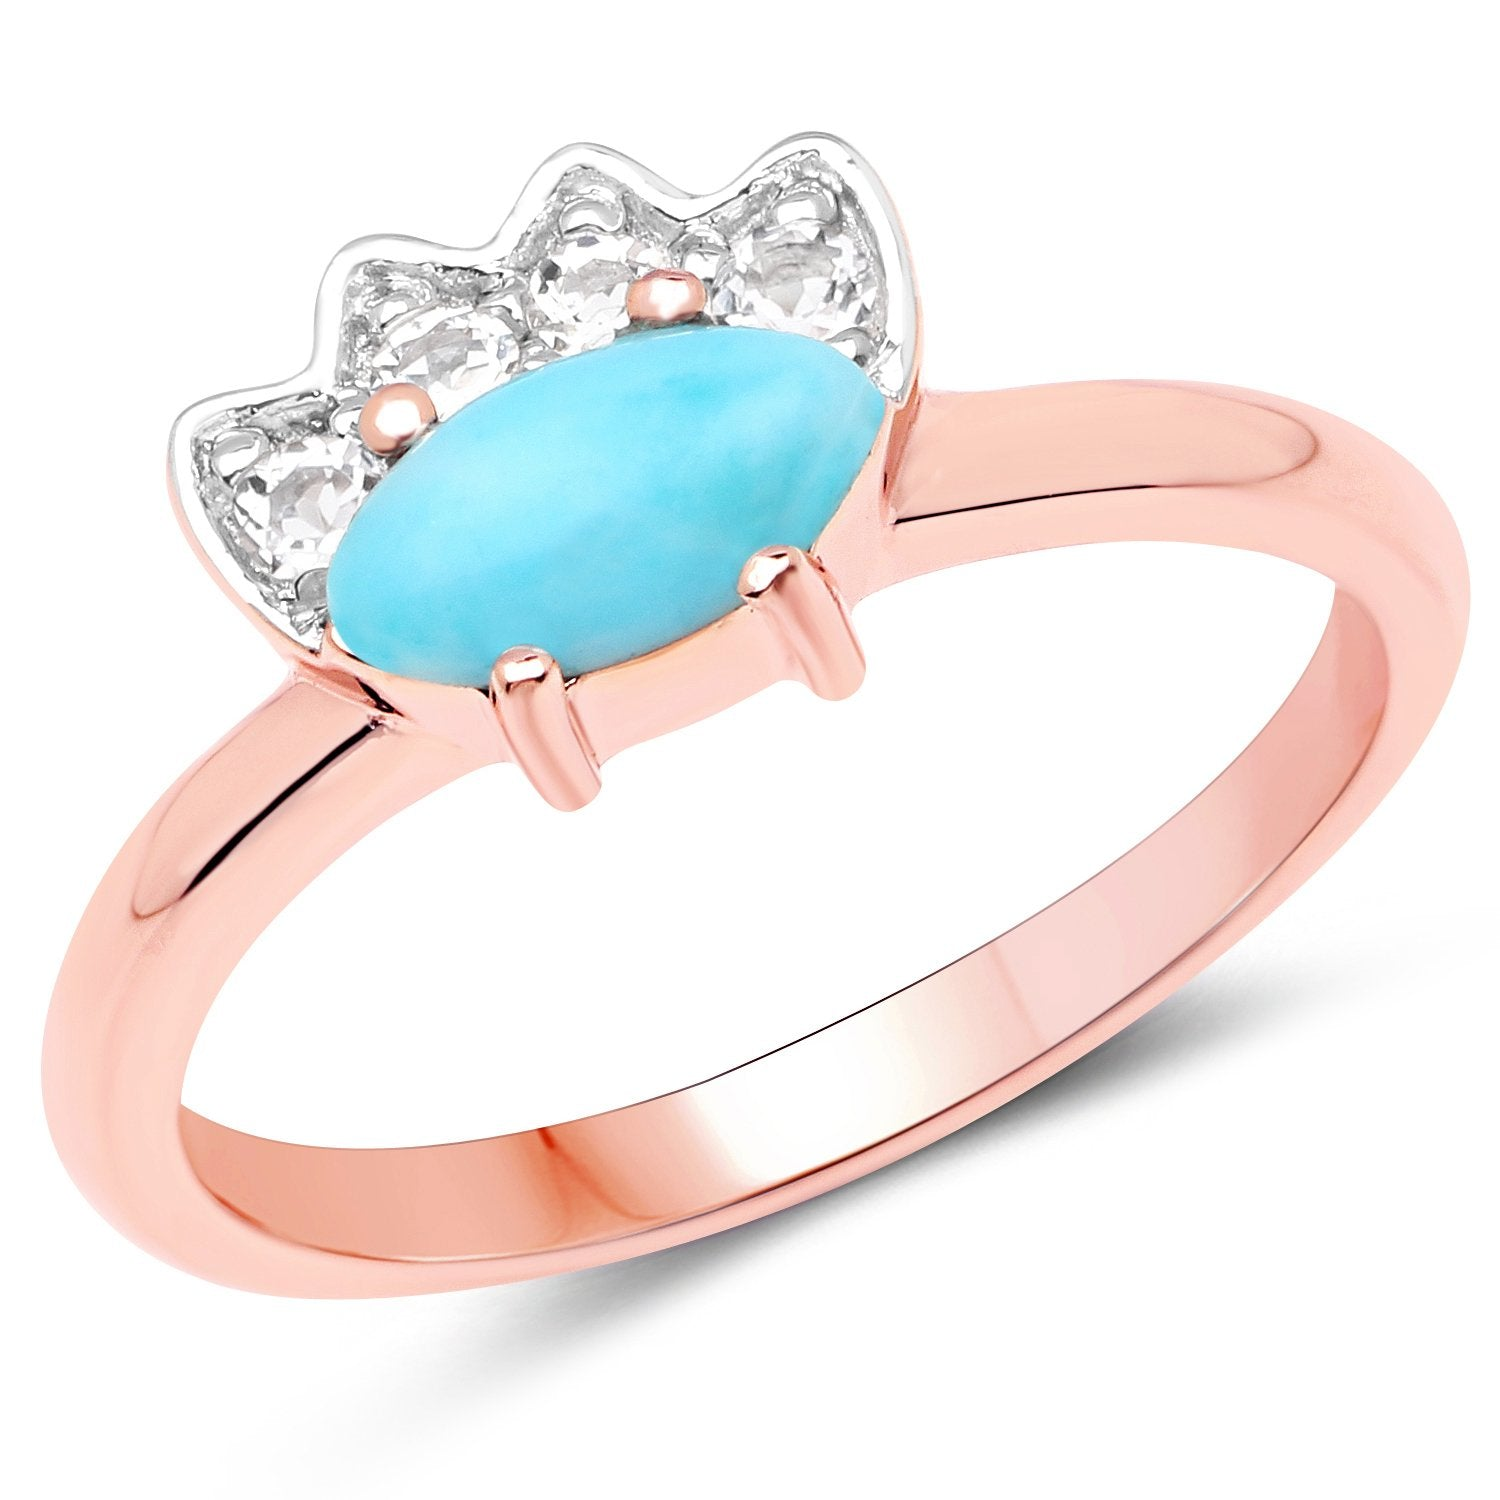 LoveHuang 0.51 Carats Genuine Larimar and White Topaz Ring Solid .925 Sterling Silver With 18KT Rose Gold Plating